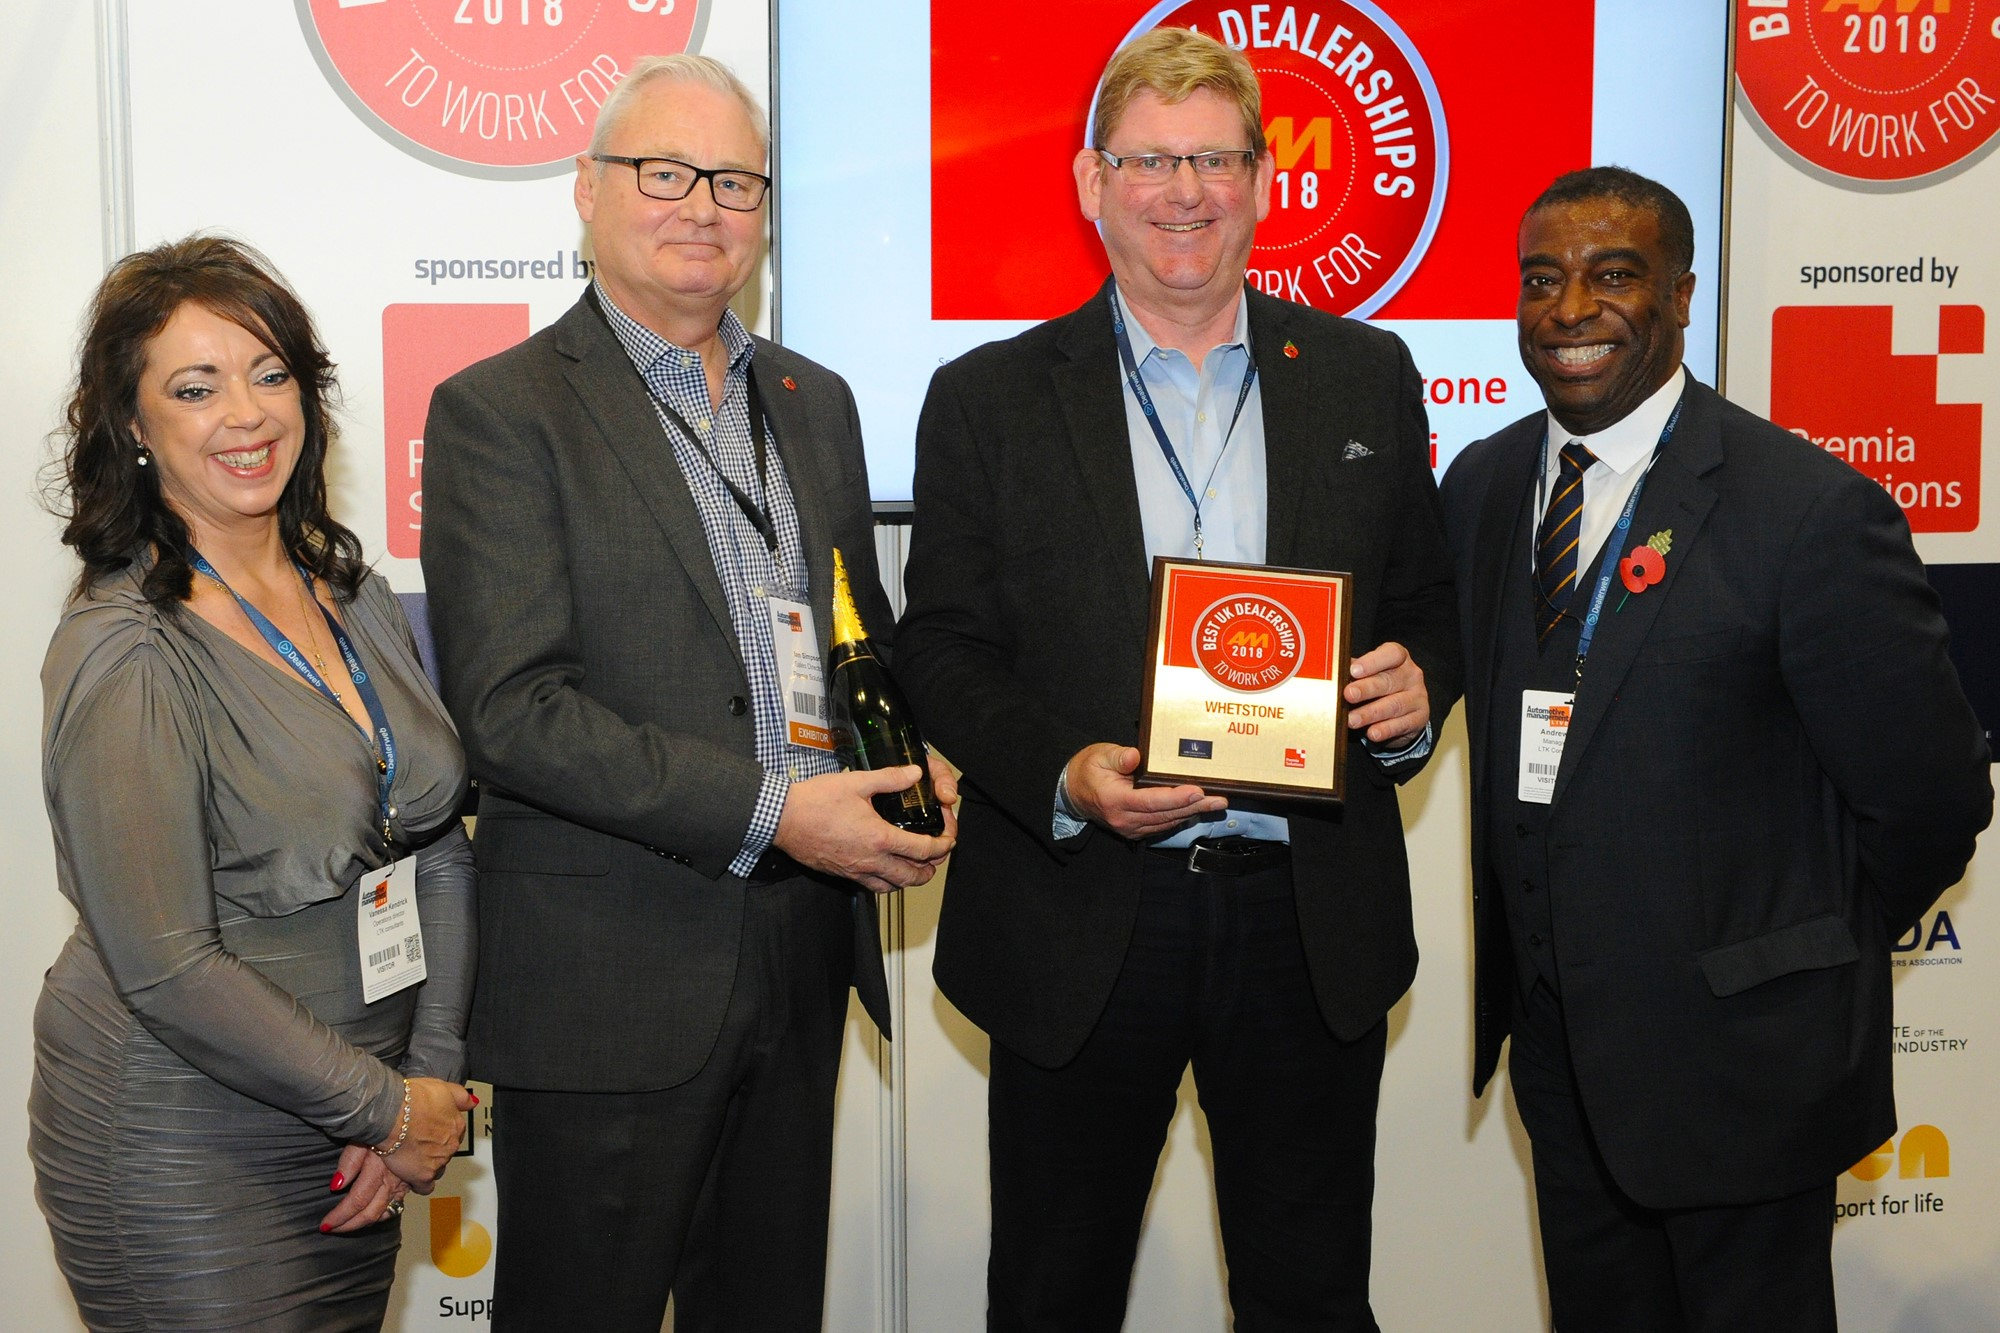 Whetstone Audi is an AM Best UK Dealership to Work For